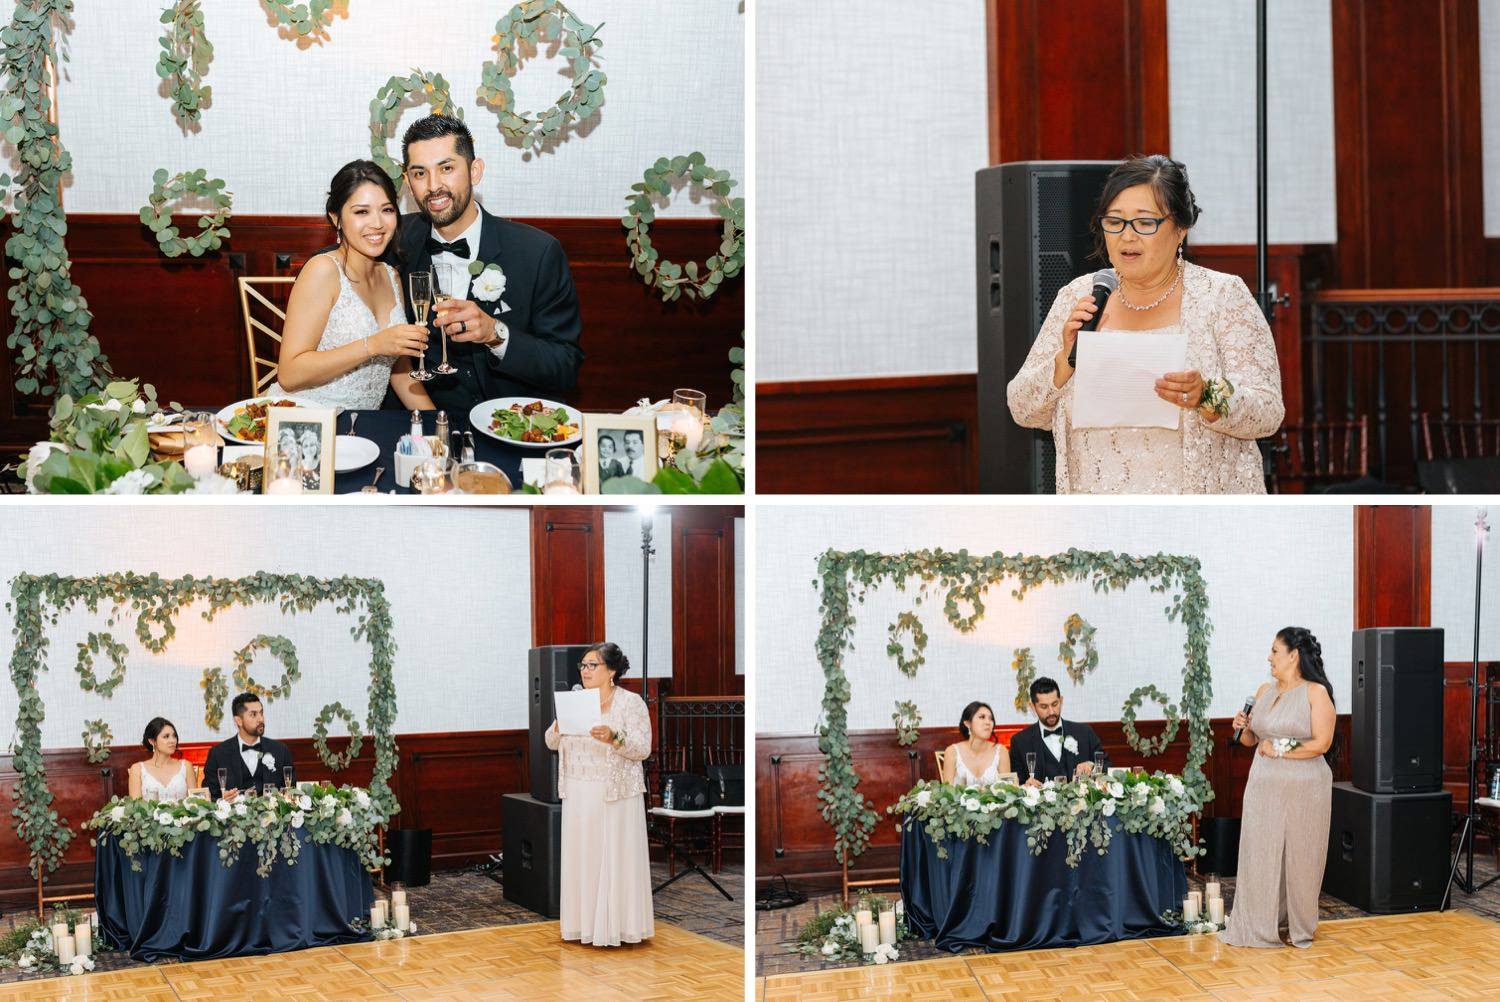 Wedding Speeches - Bride's Mom gives toast during reception - https://brittneyhannonphotography.com